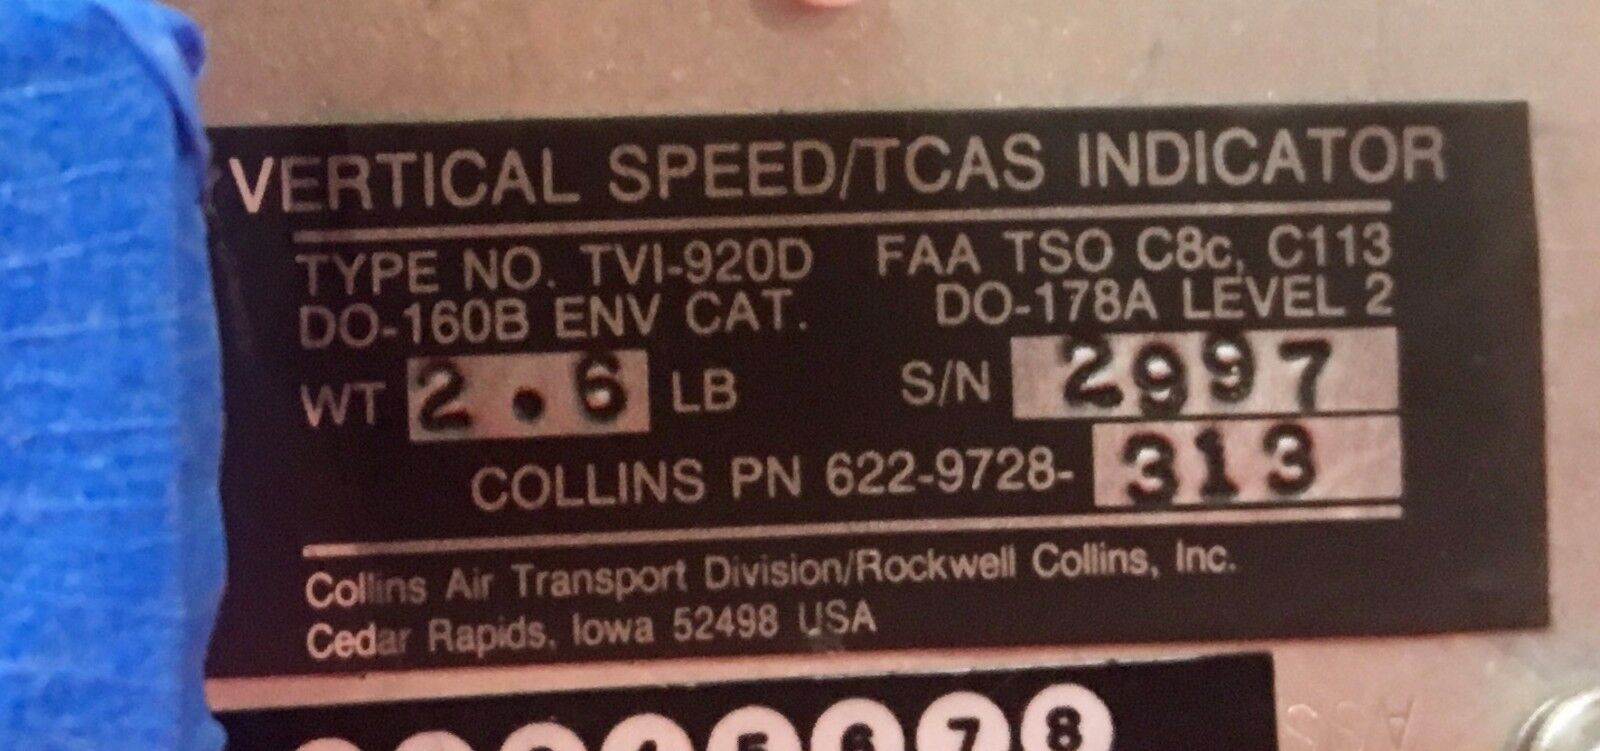 Vertical Speed/TCAS Indicator TVI920D 622-9728-313 As Removed